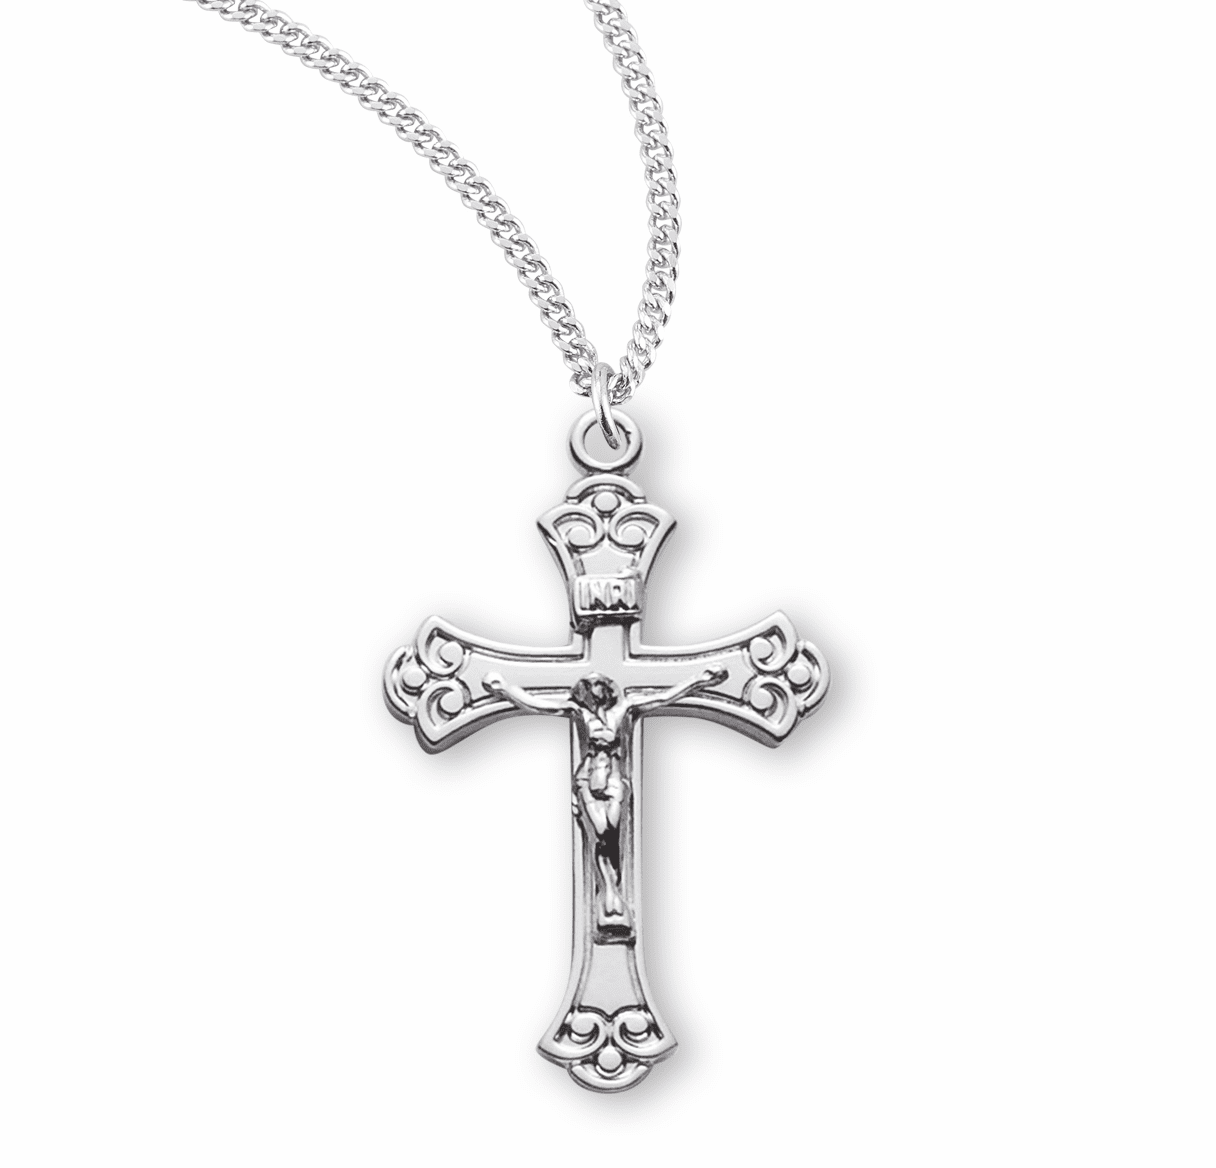 HMH Religious Sterling Silver Medium Fancy Swirl Tipped Crucifix Necklace